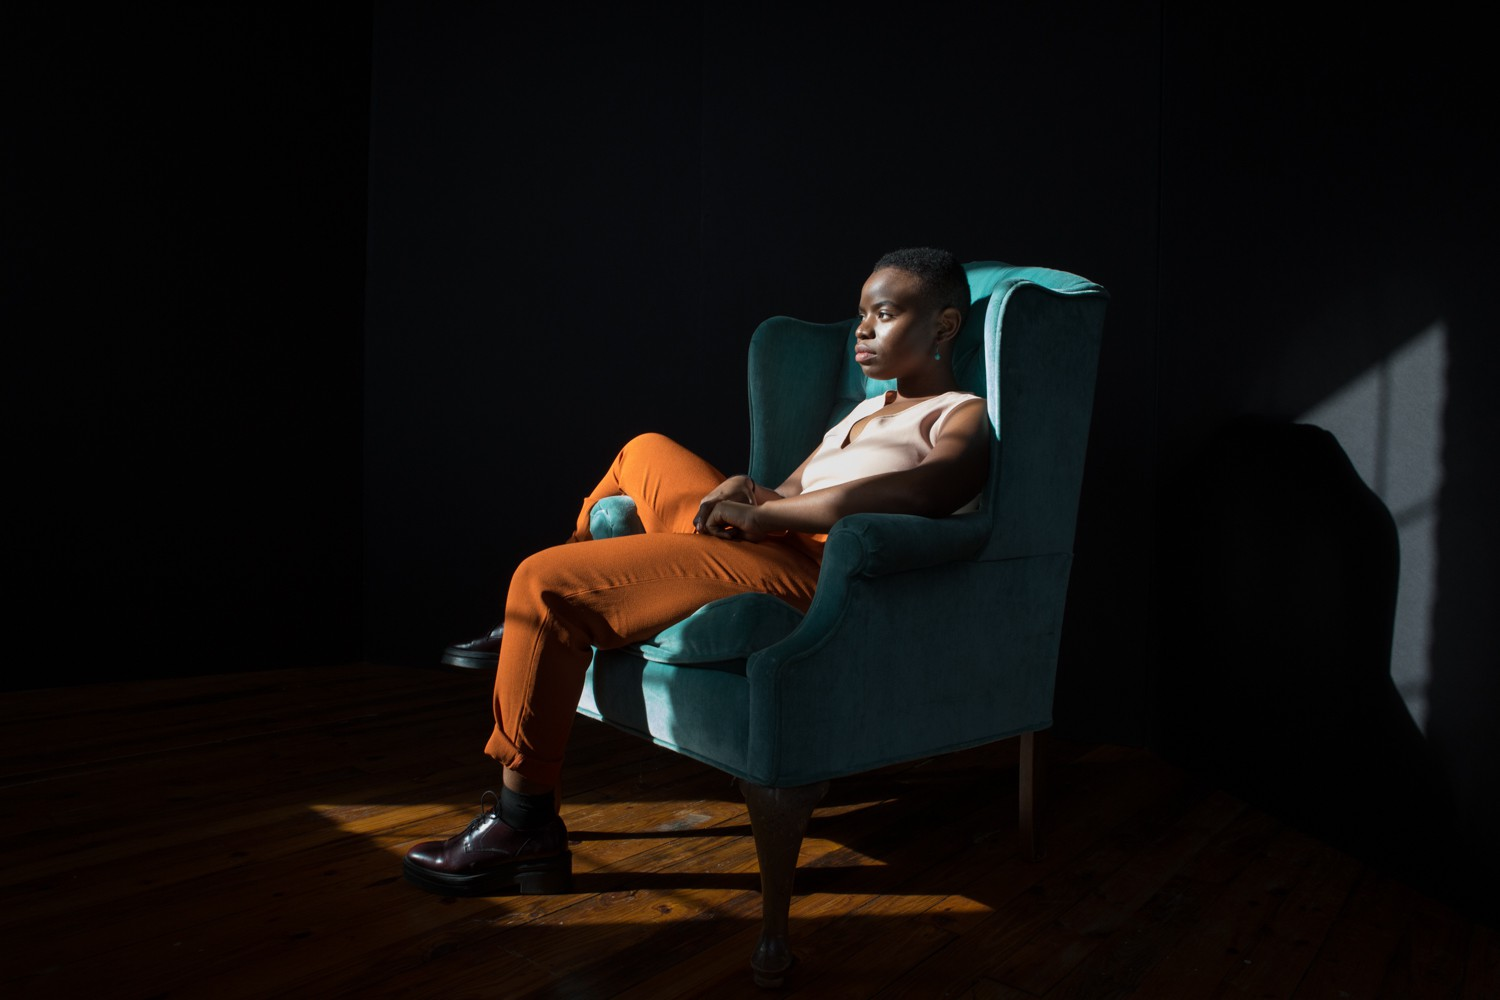 Vagabon plays a record release show Friday at Baby's All Right